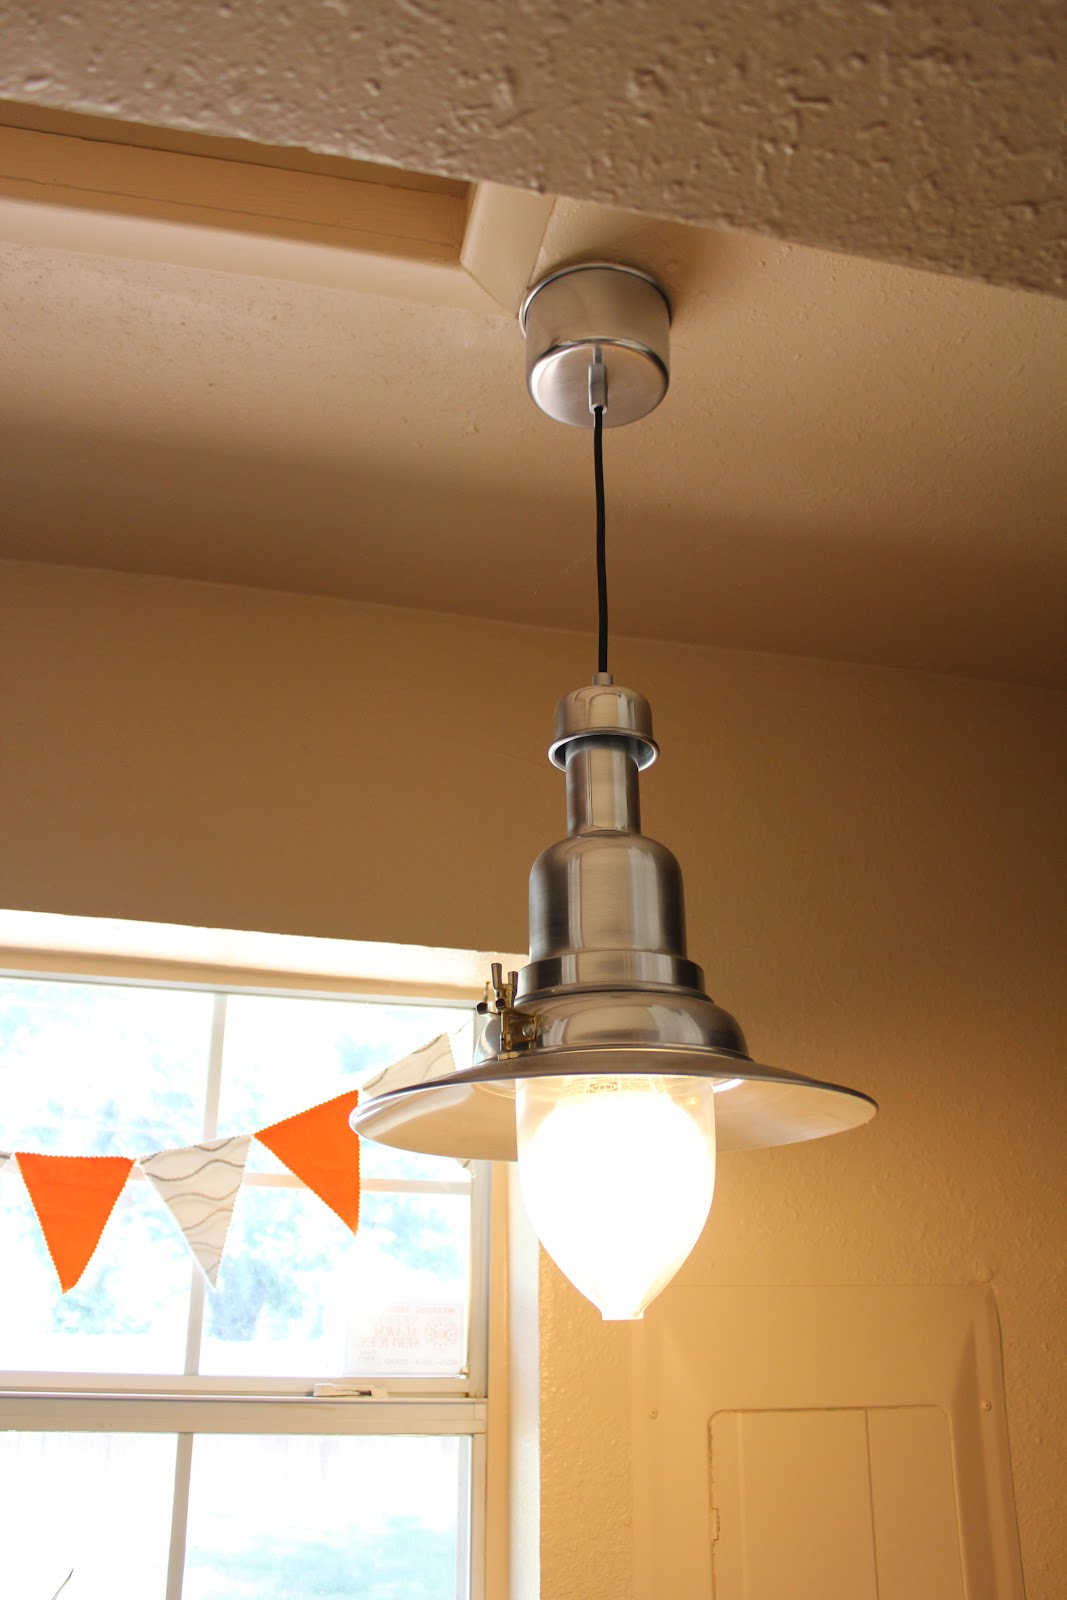 New Light Of Myanmar Daily Journal: Kitchen/Laundry Room - New Light Fixtures